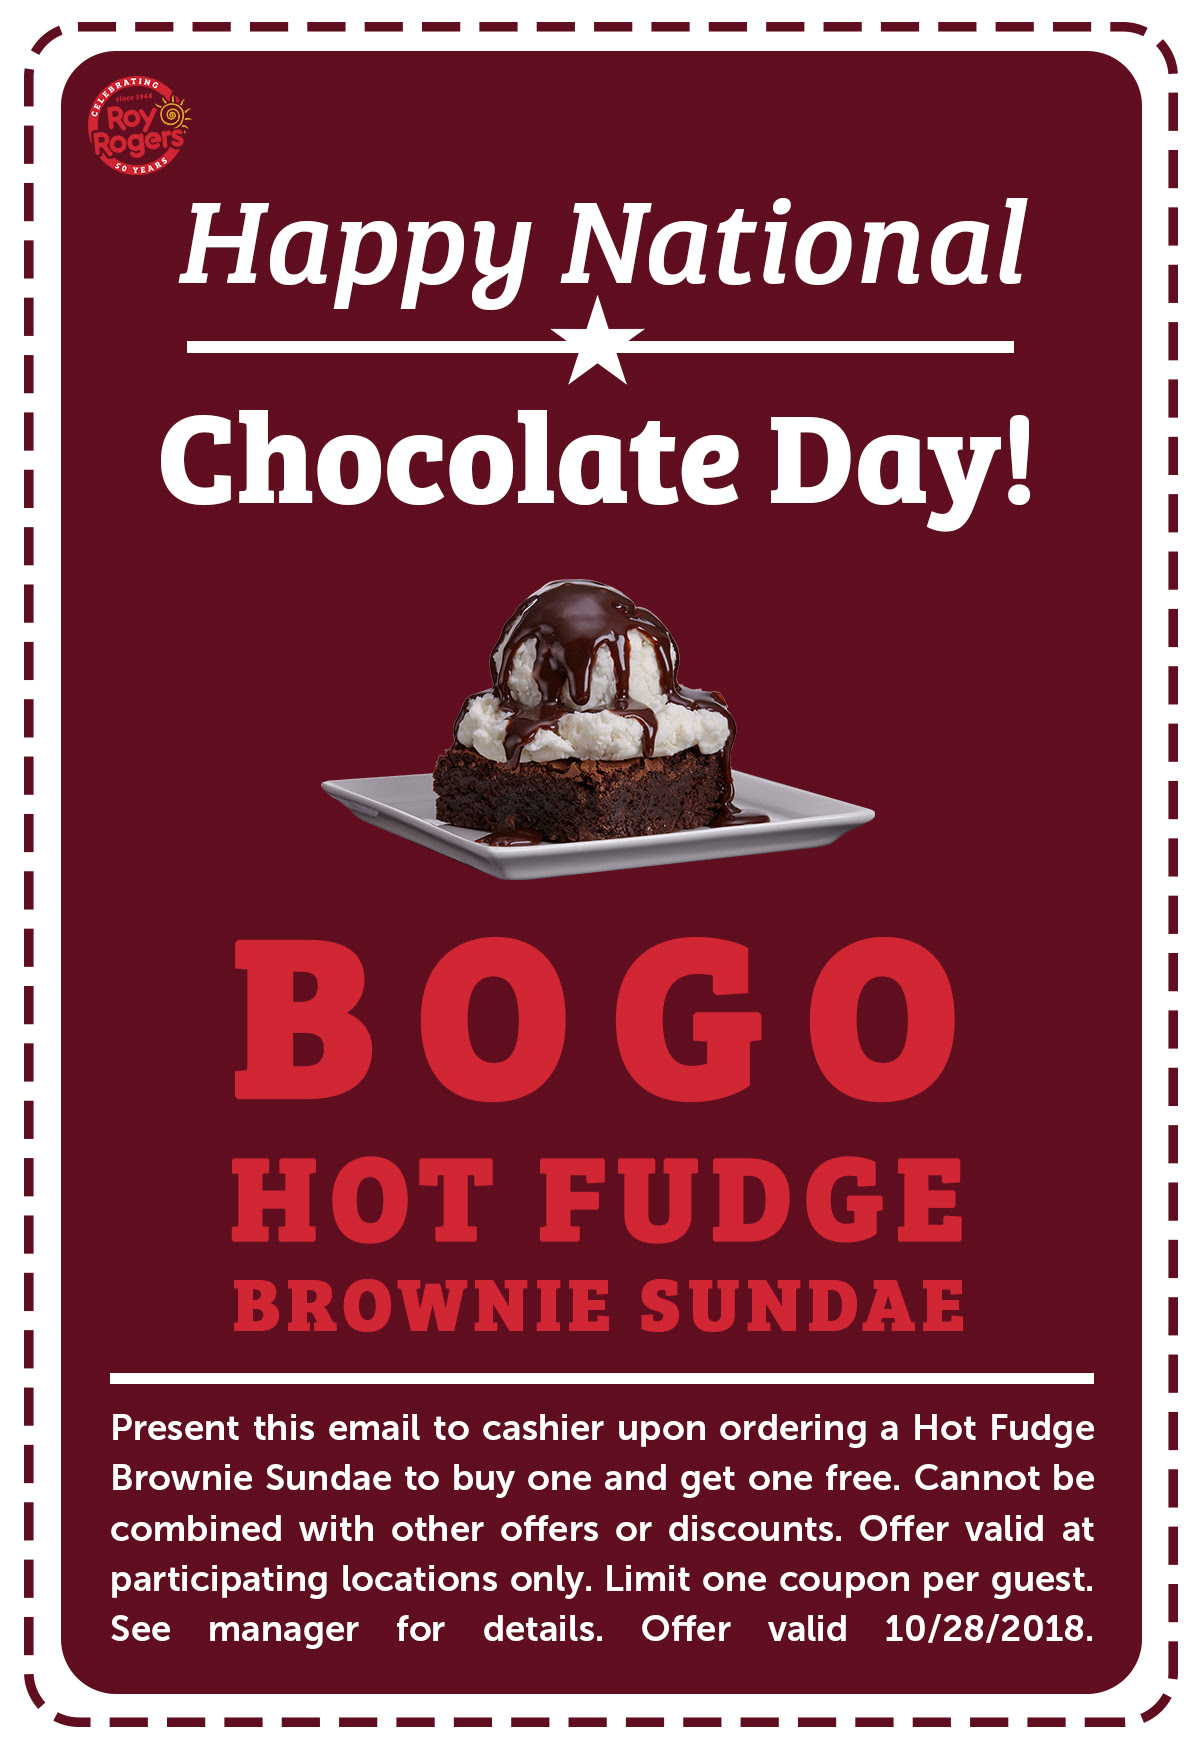 Roy Rogers Coupon August 2020 Second hot fudge brownie sundae free today at Roy Rogers restaurants